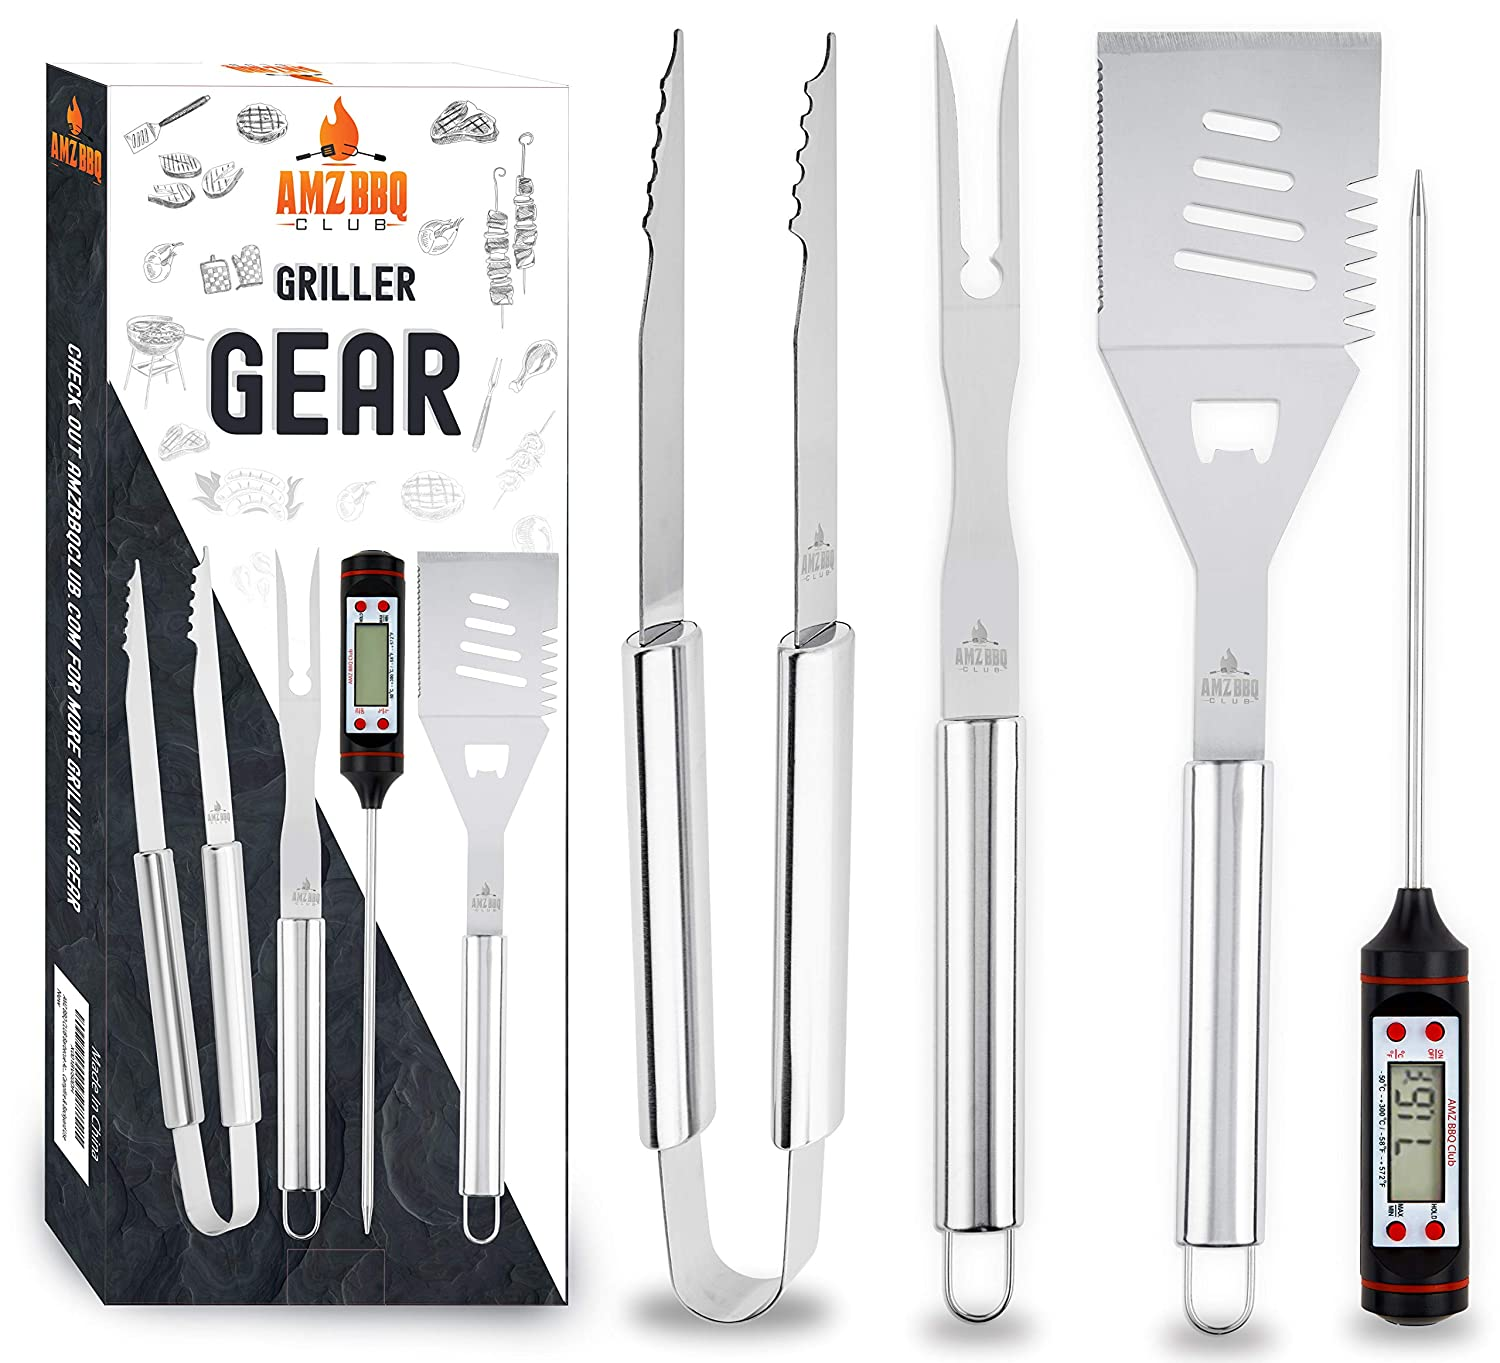 AMZ BBQ CLUB Barbecue Accessories Grilling Tools 4 Piece Set Premium Quality Grill Utensils – Instant Read Digital Thermometer, Spatula, Fork Tongs – for Home Kitchen, Campfire Backyard Use